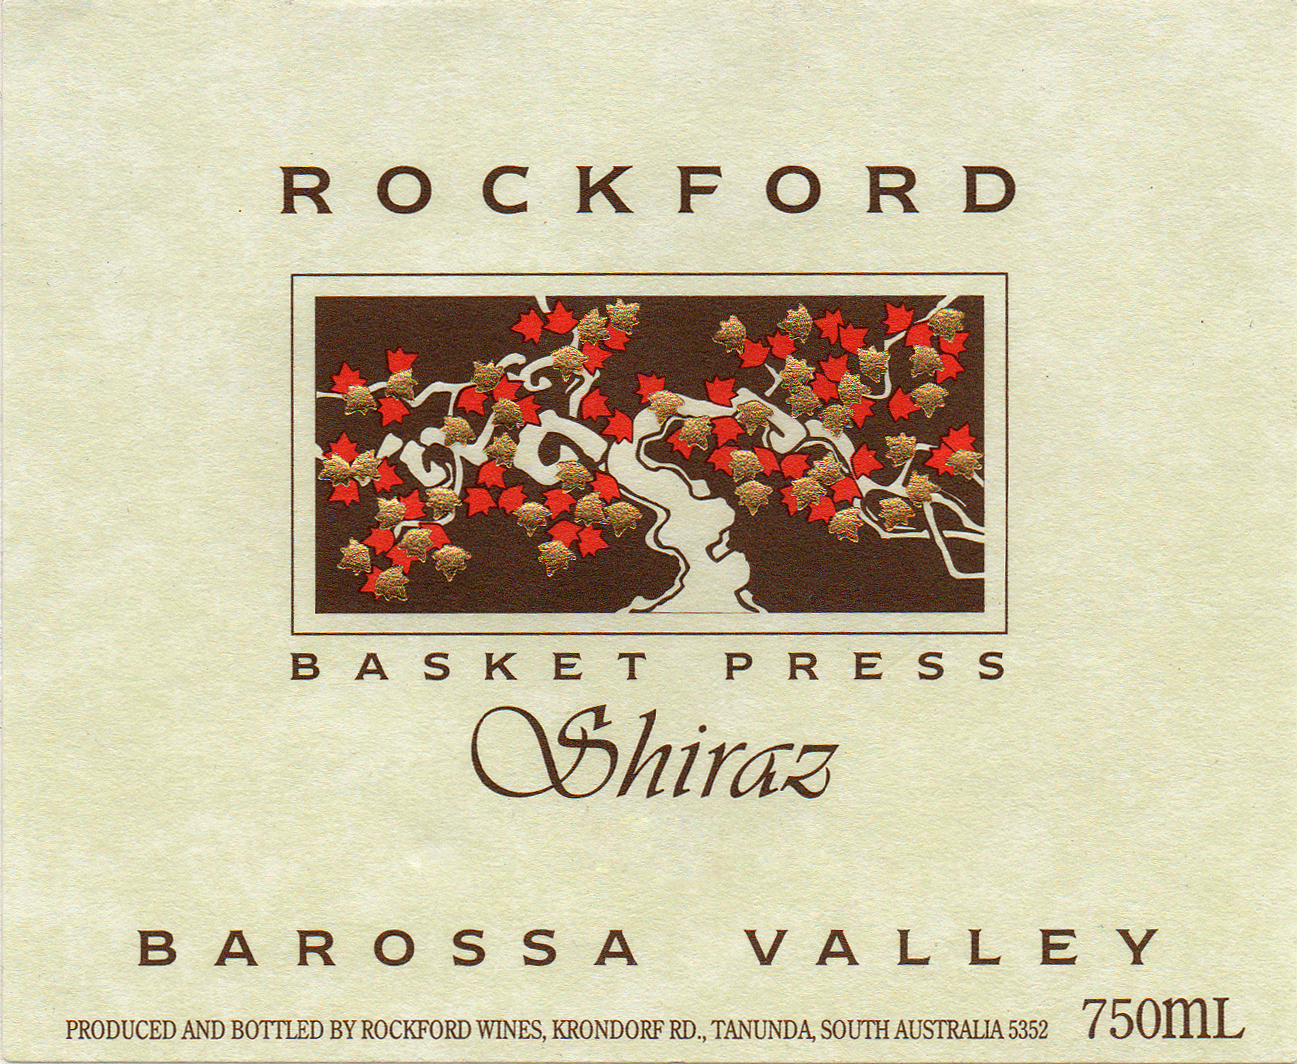 08 Rockford Basket Press.jpg